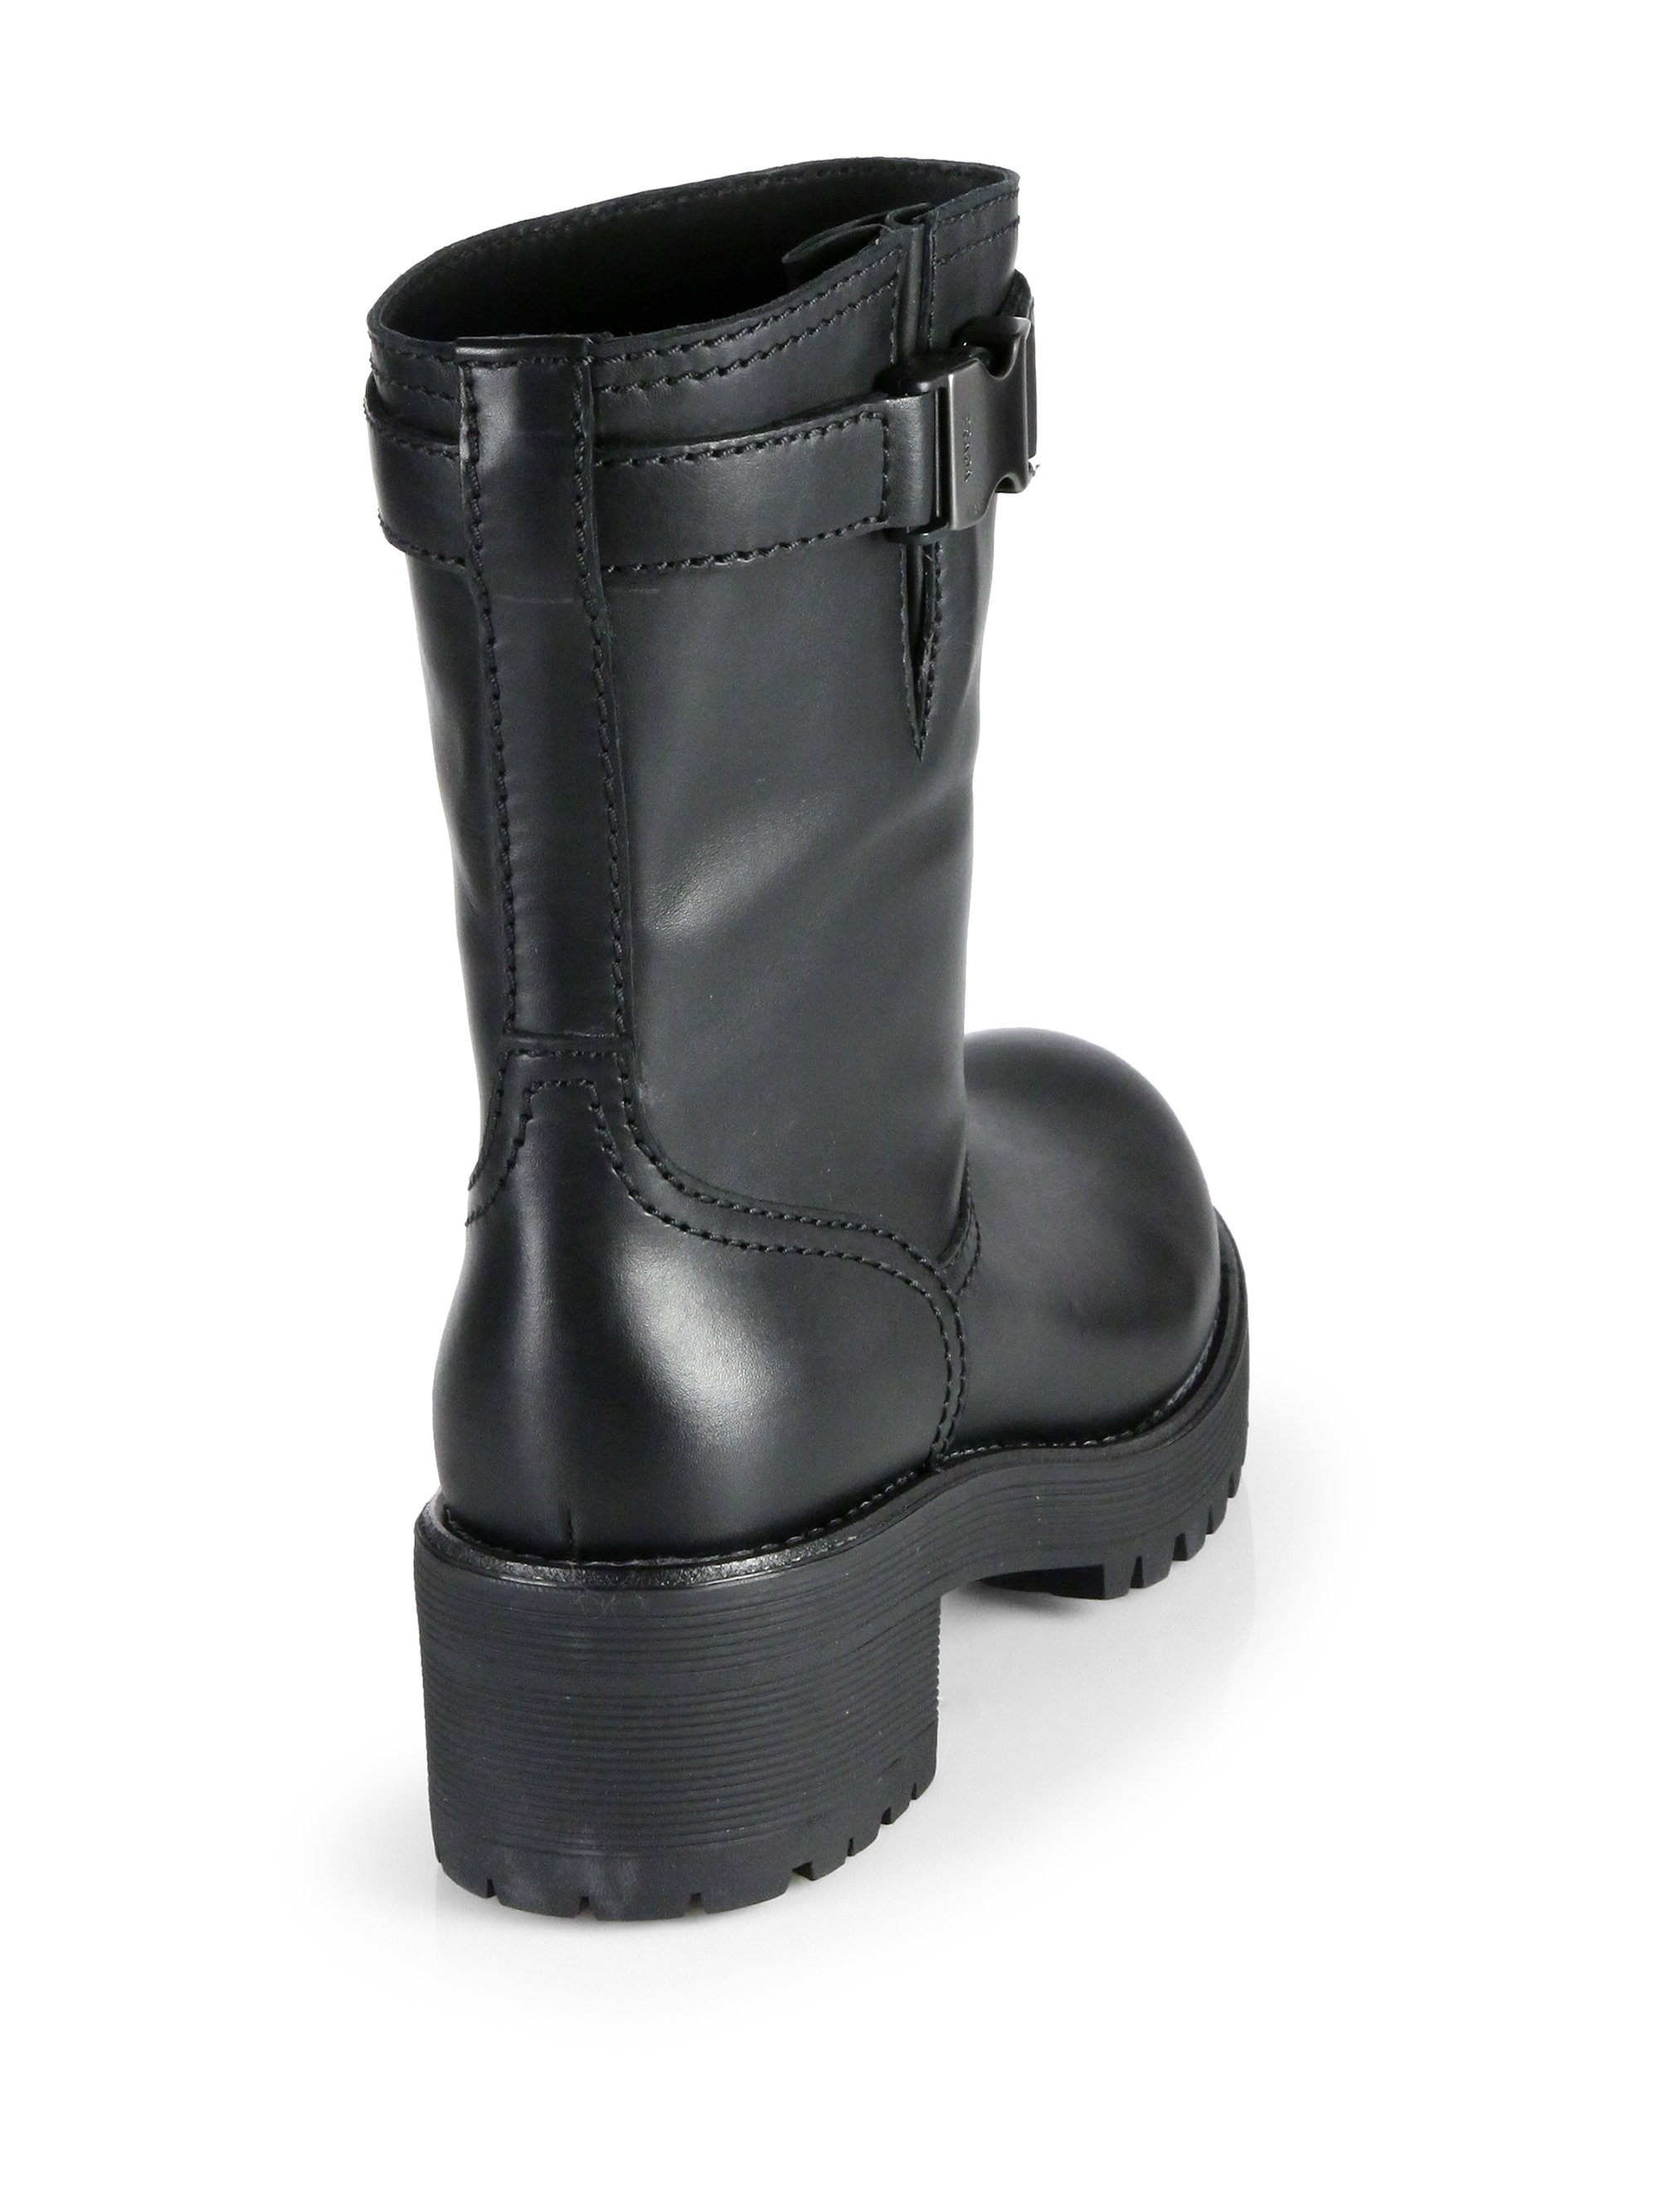 Prada Leather Buckled Boots Buy Cheap Perfect 73Xost7KPW